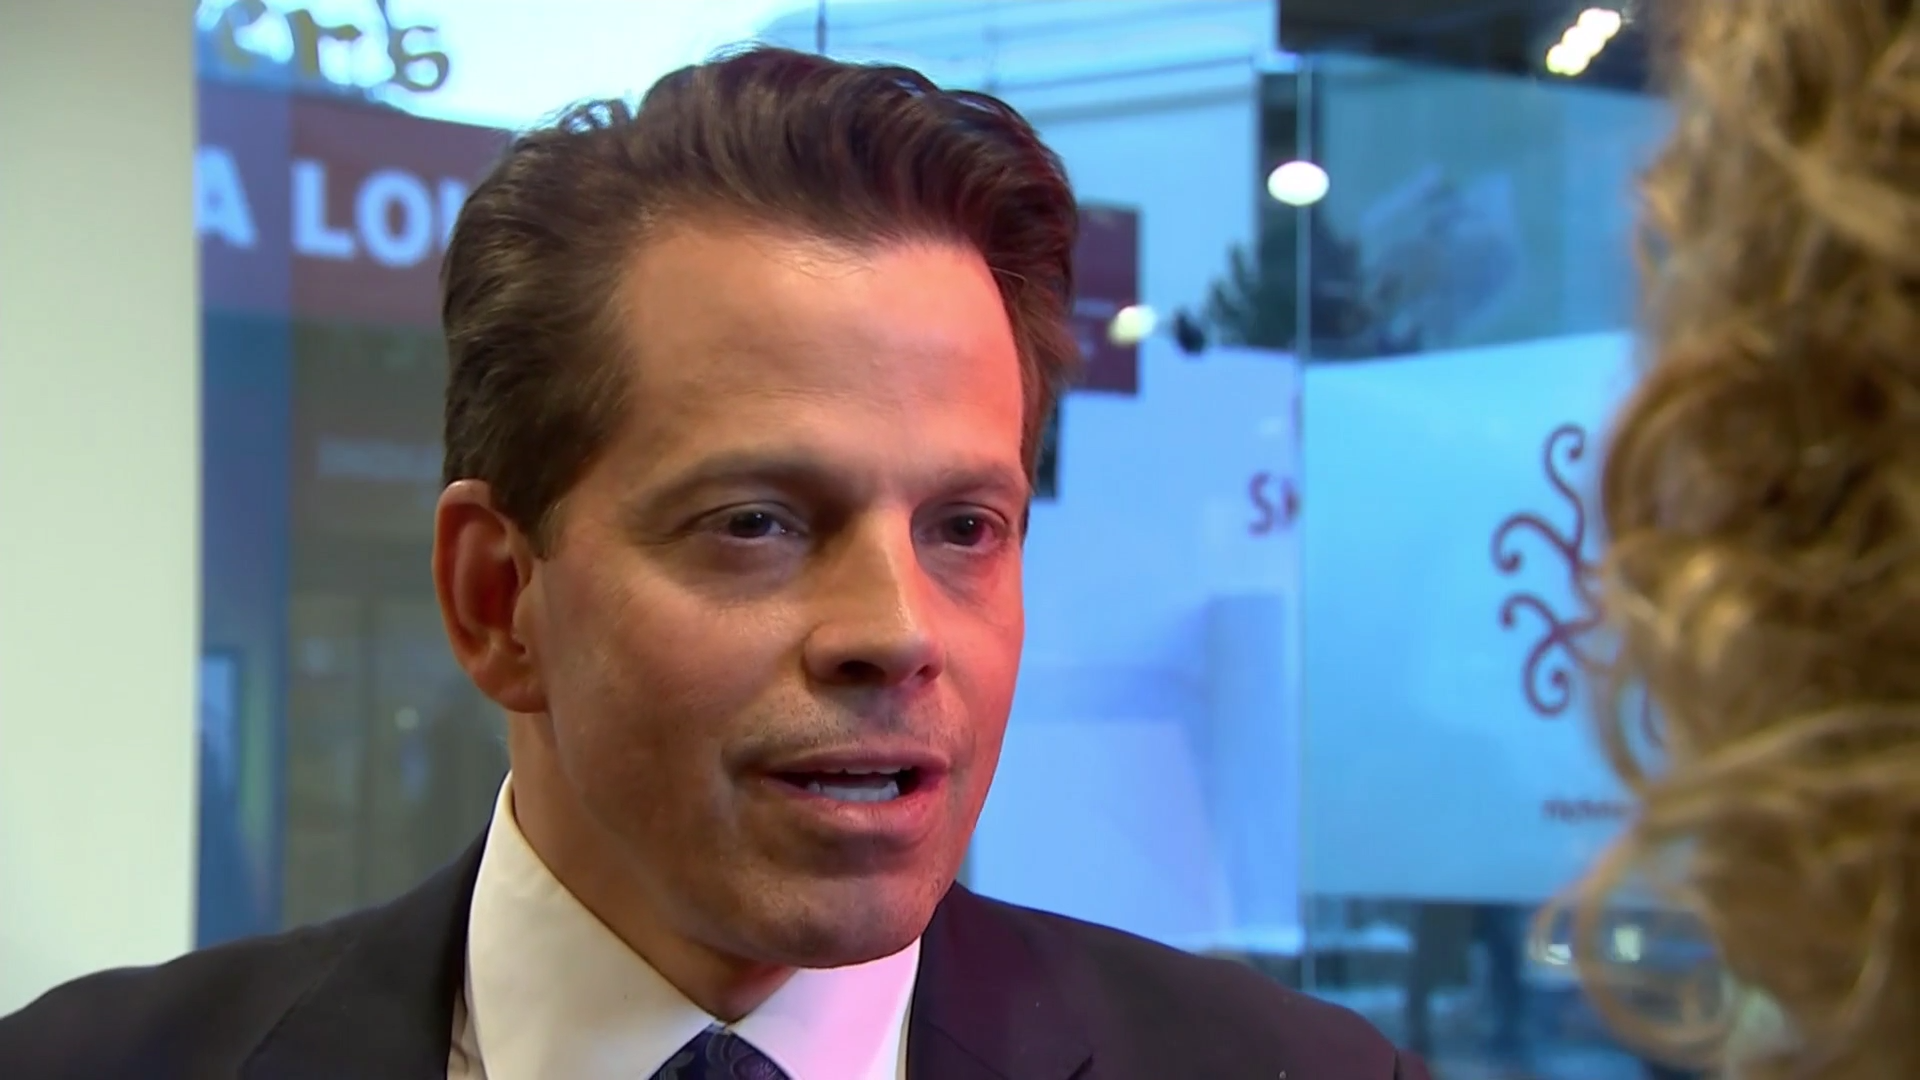 ZSkM9w5w3ce image 1920x1080 - 'When you have full-blown demagoguery and bullying, people get scared' – ex-Trump aide Anthony Scaramucci – Channel 4 News